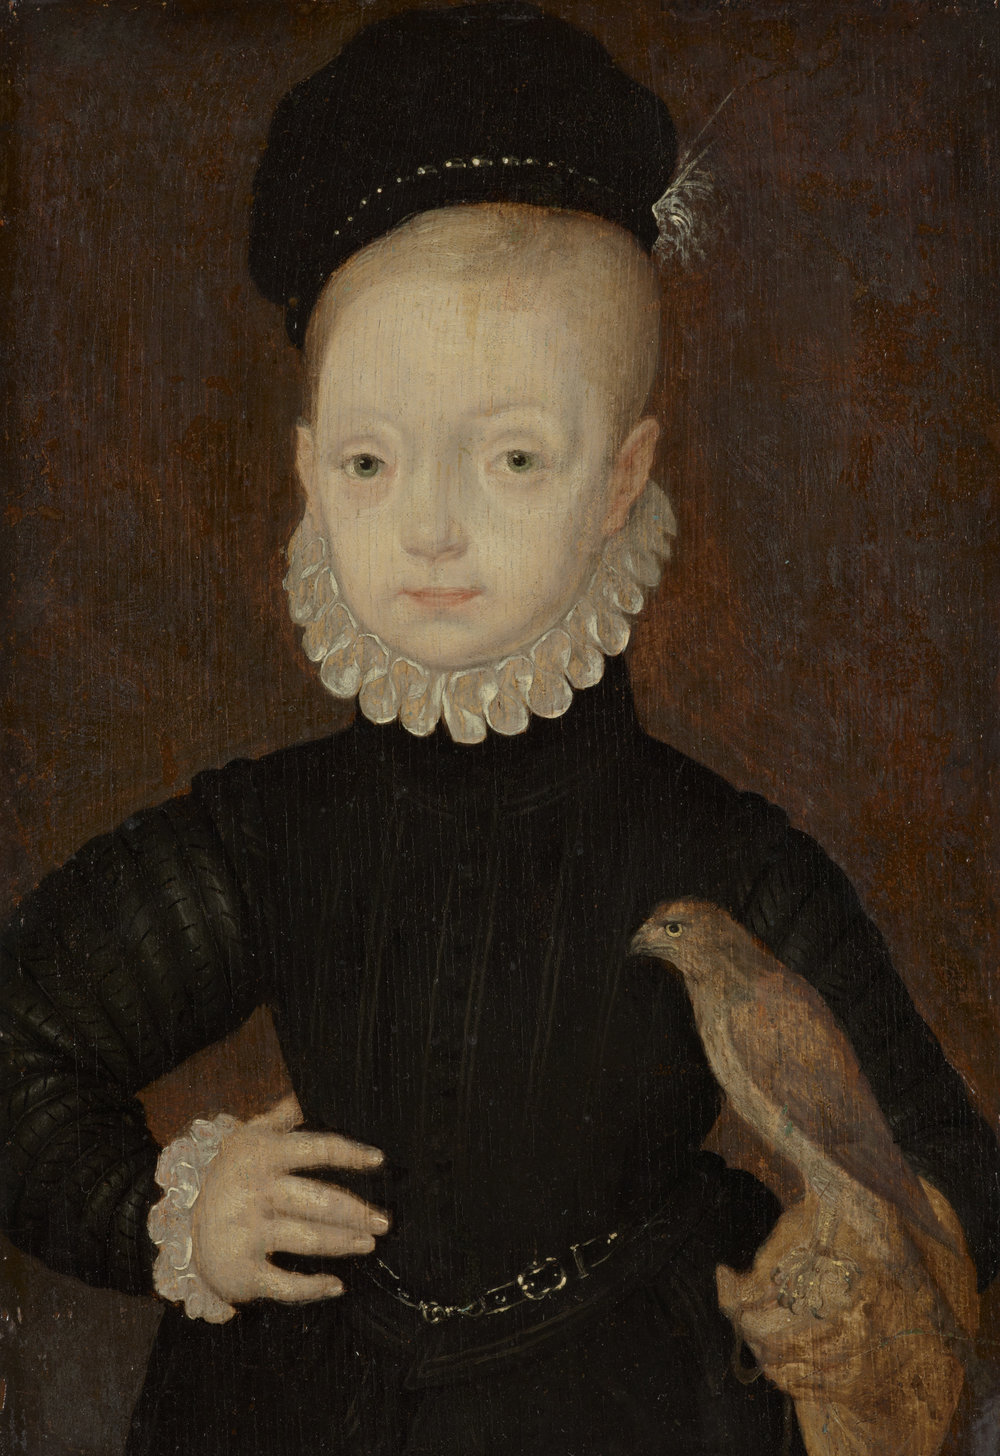 Arnold Bronckorst:  James VI and I, 1566 - 1625. King of Scotland 1567 - 1625. King of England and Ireland 1603 - 1625 (as a boy).  Noin 1574. National Galleries of Scotland.  https://www.nationalgalleries.org/art-and-artists/2853/james-vi-and-i-1566-1625-king-scotland-1567-1625-king-england-and-ireland-1603-1625-boy